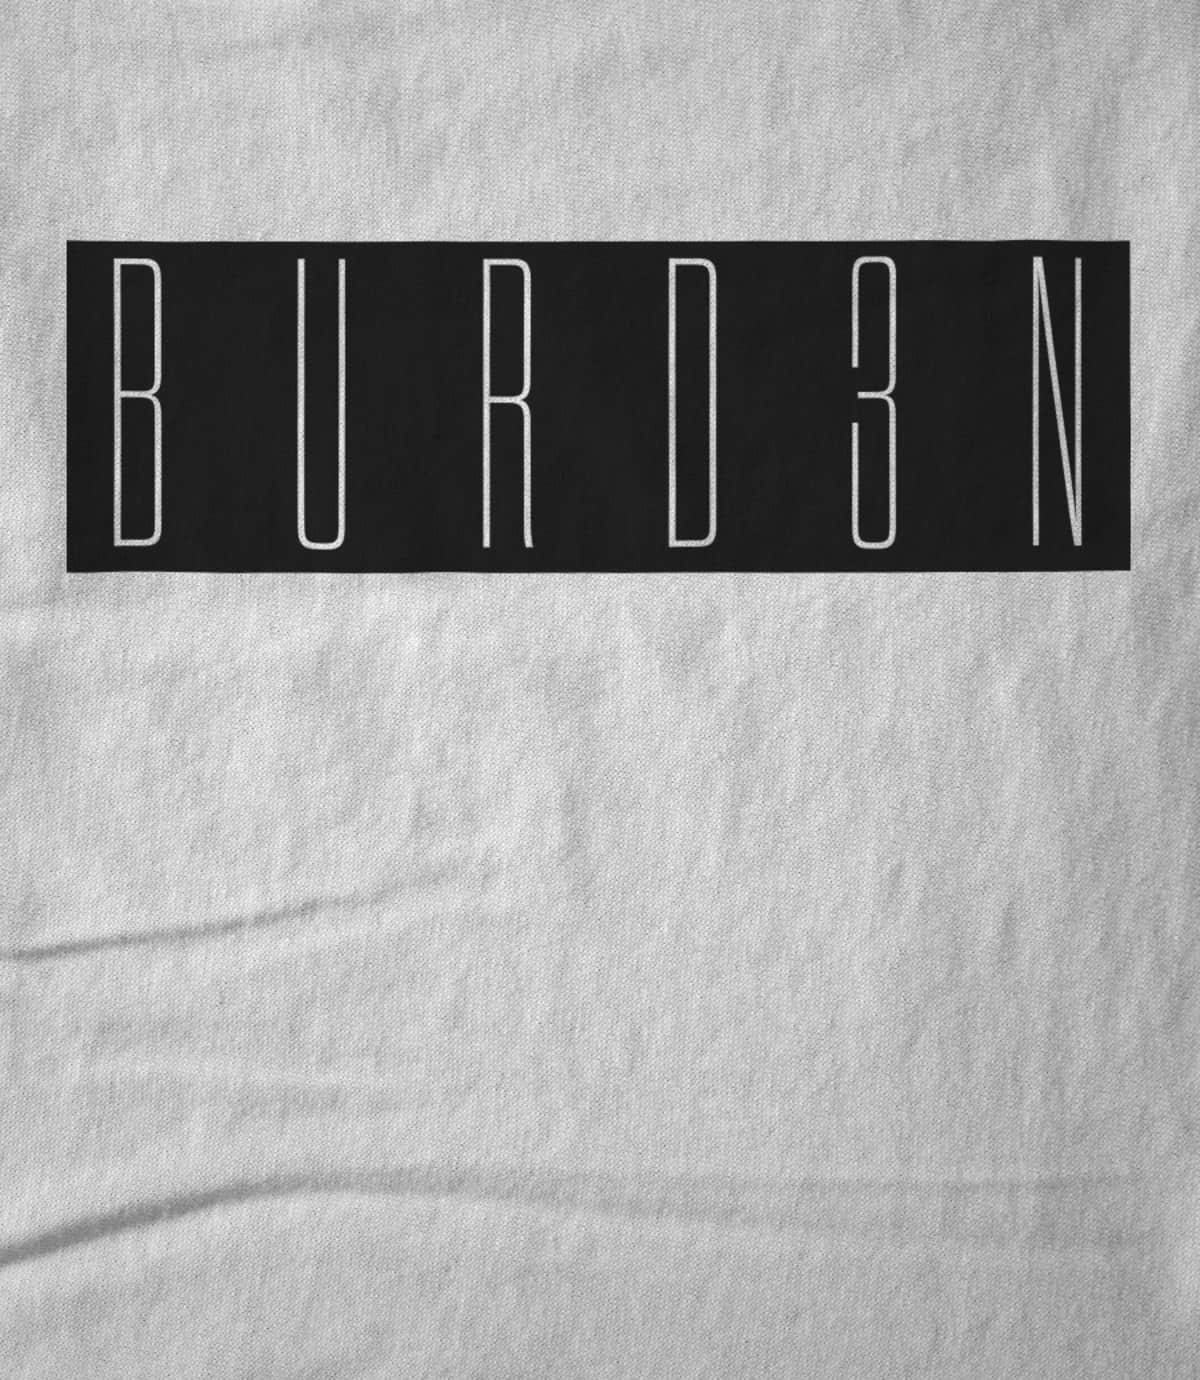 Burden of the sky burd3n   white 1585955371